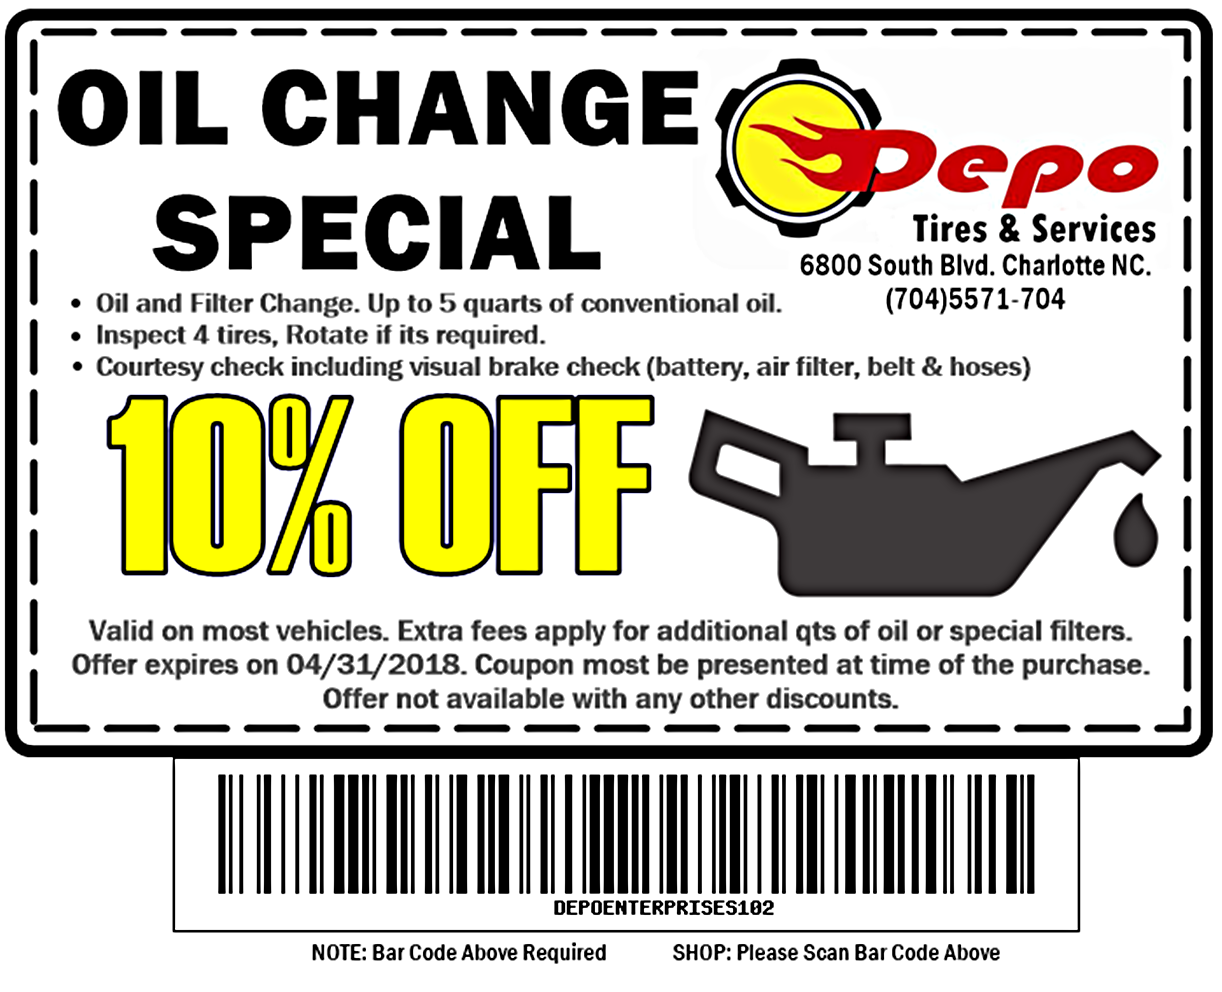 Depo Tires and Services image 1